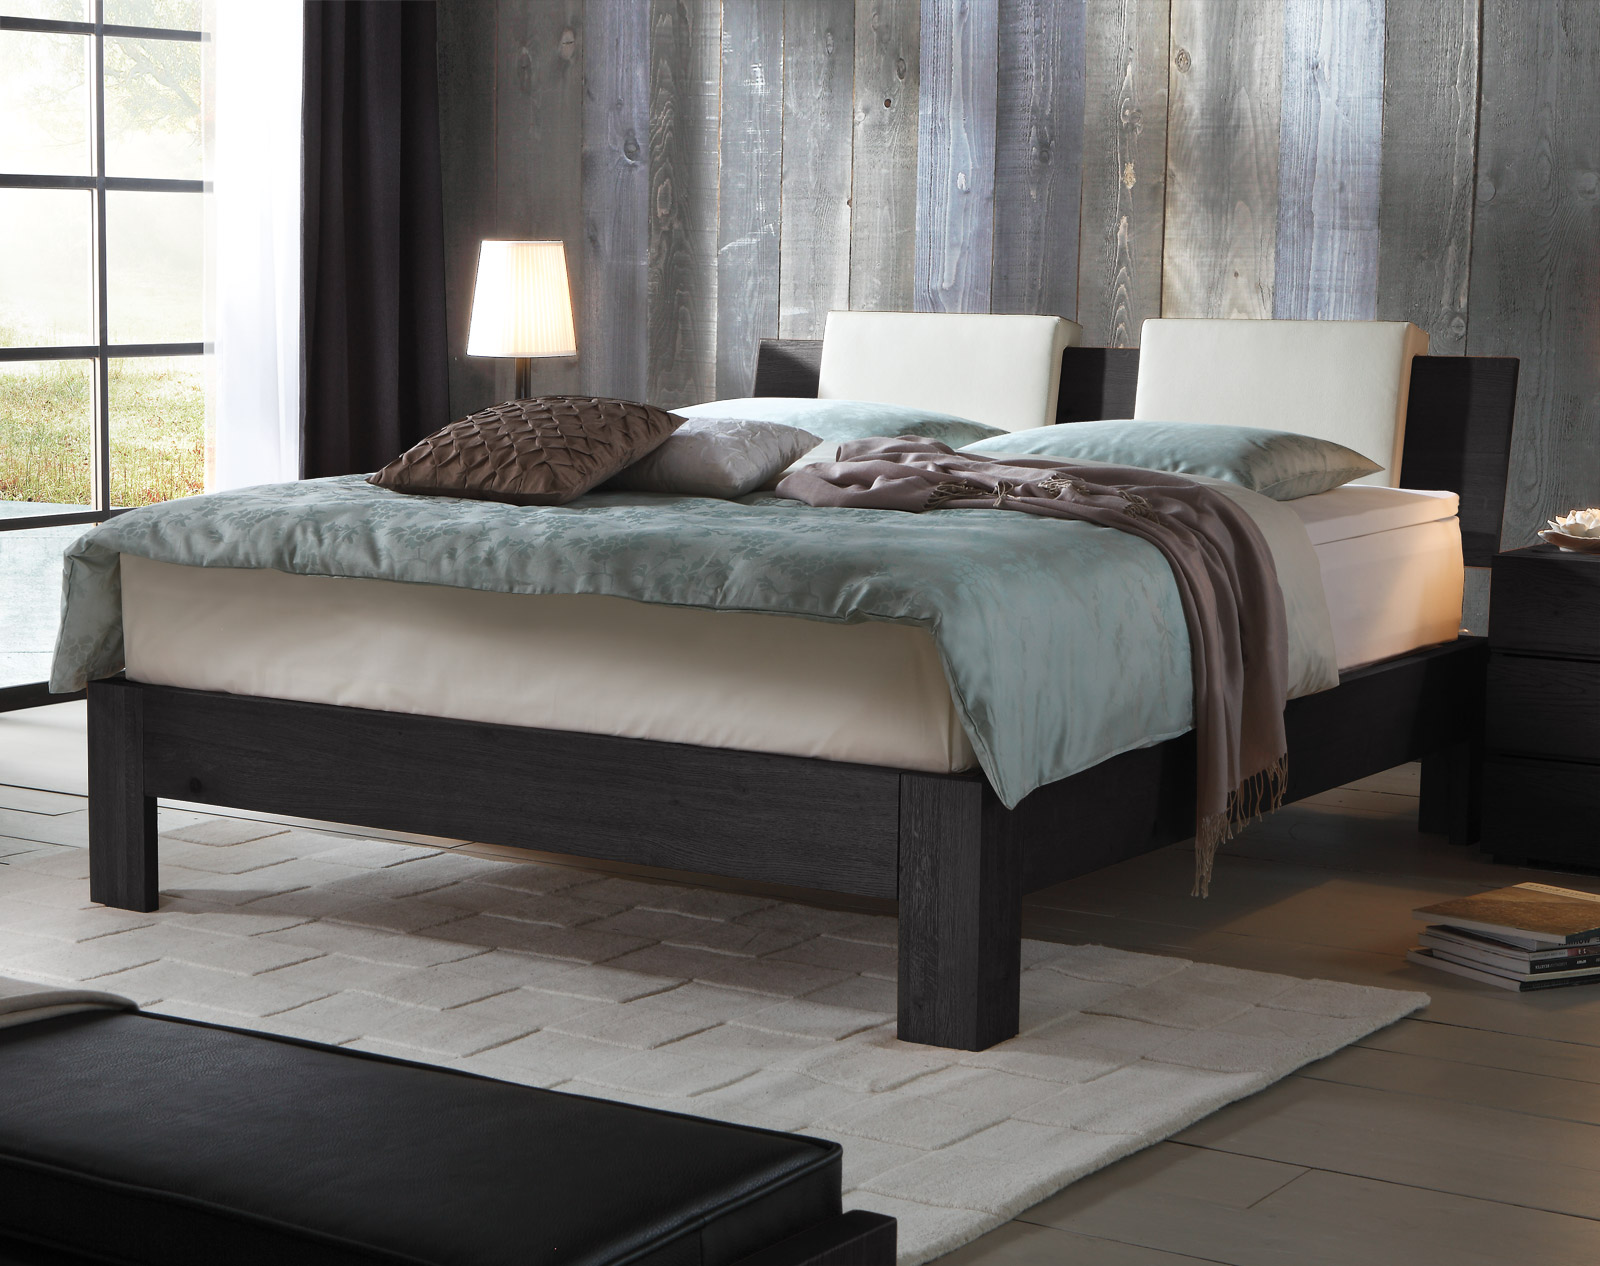 die graphitfarbene rahmenvariante passt sehr sch n in helle. Black Bedroom Furniture Sets. Home Design Ideas